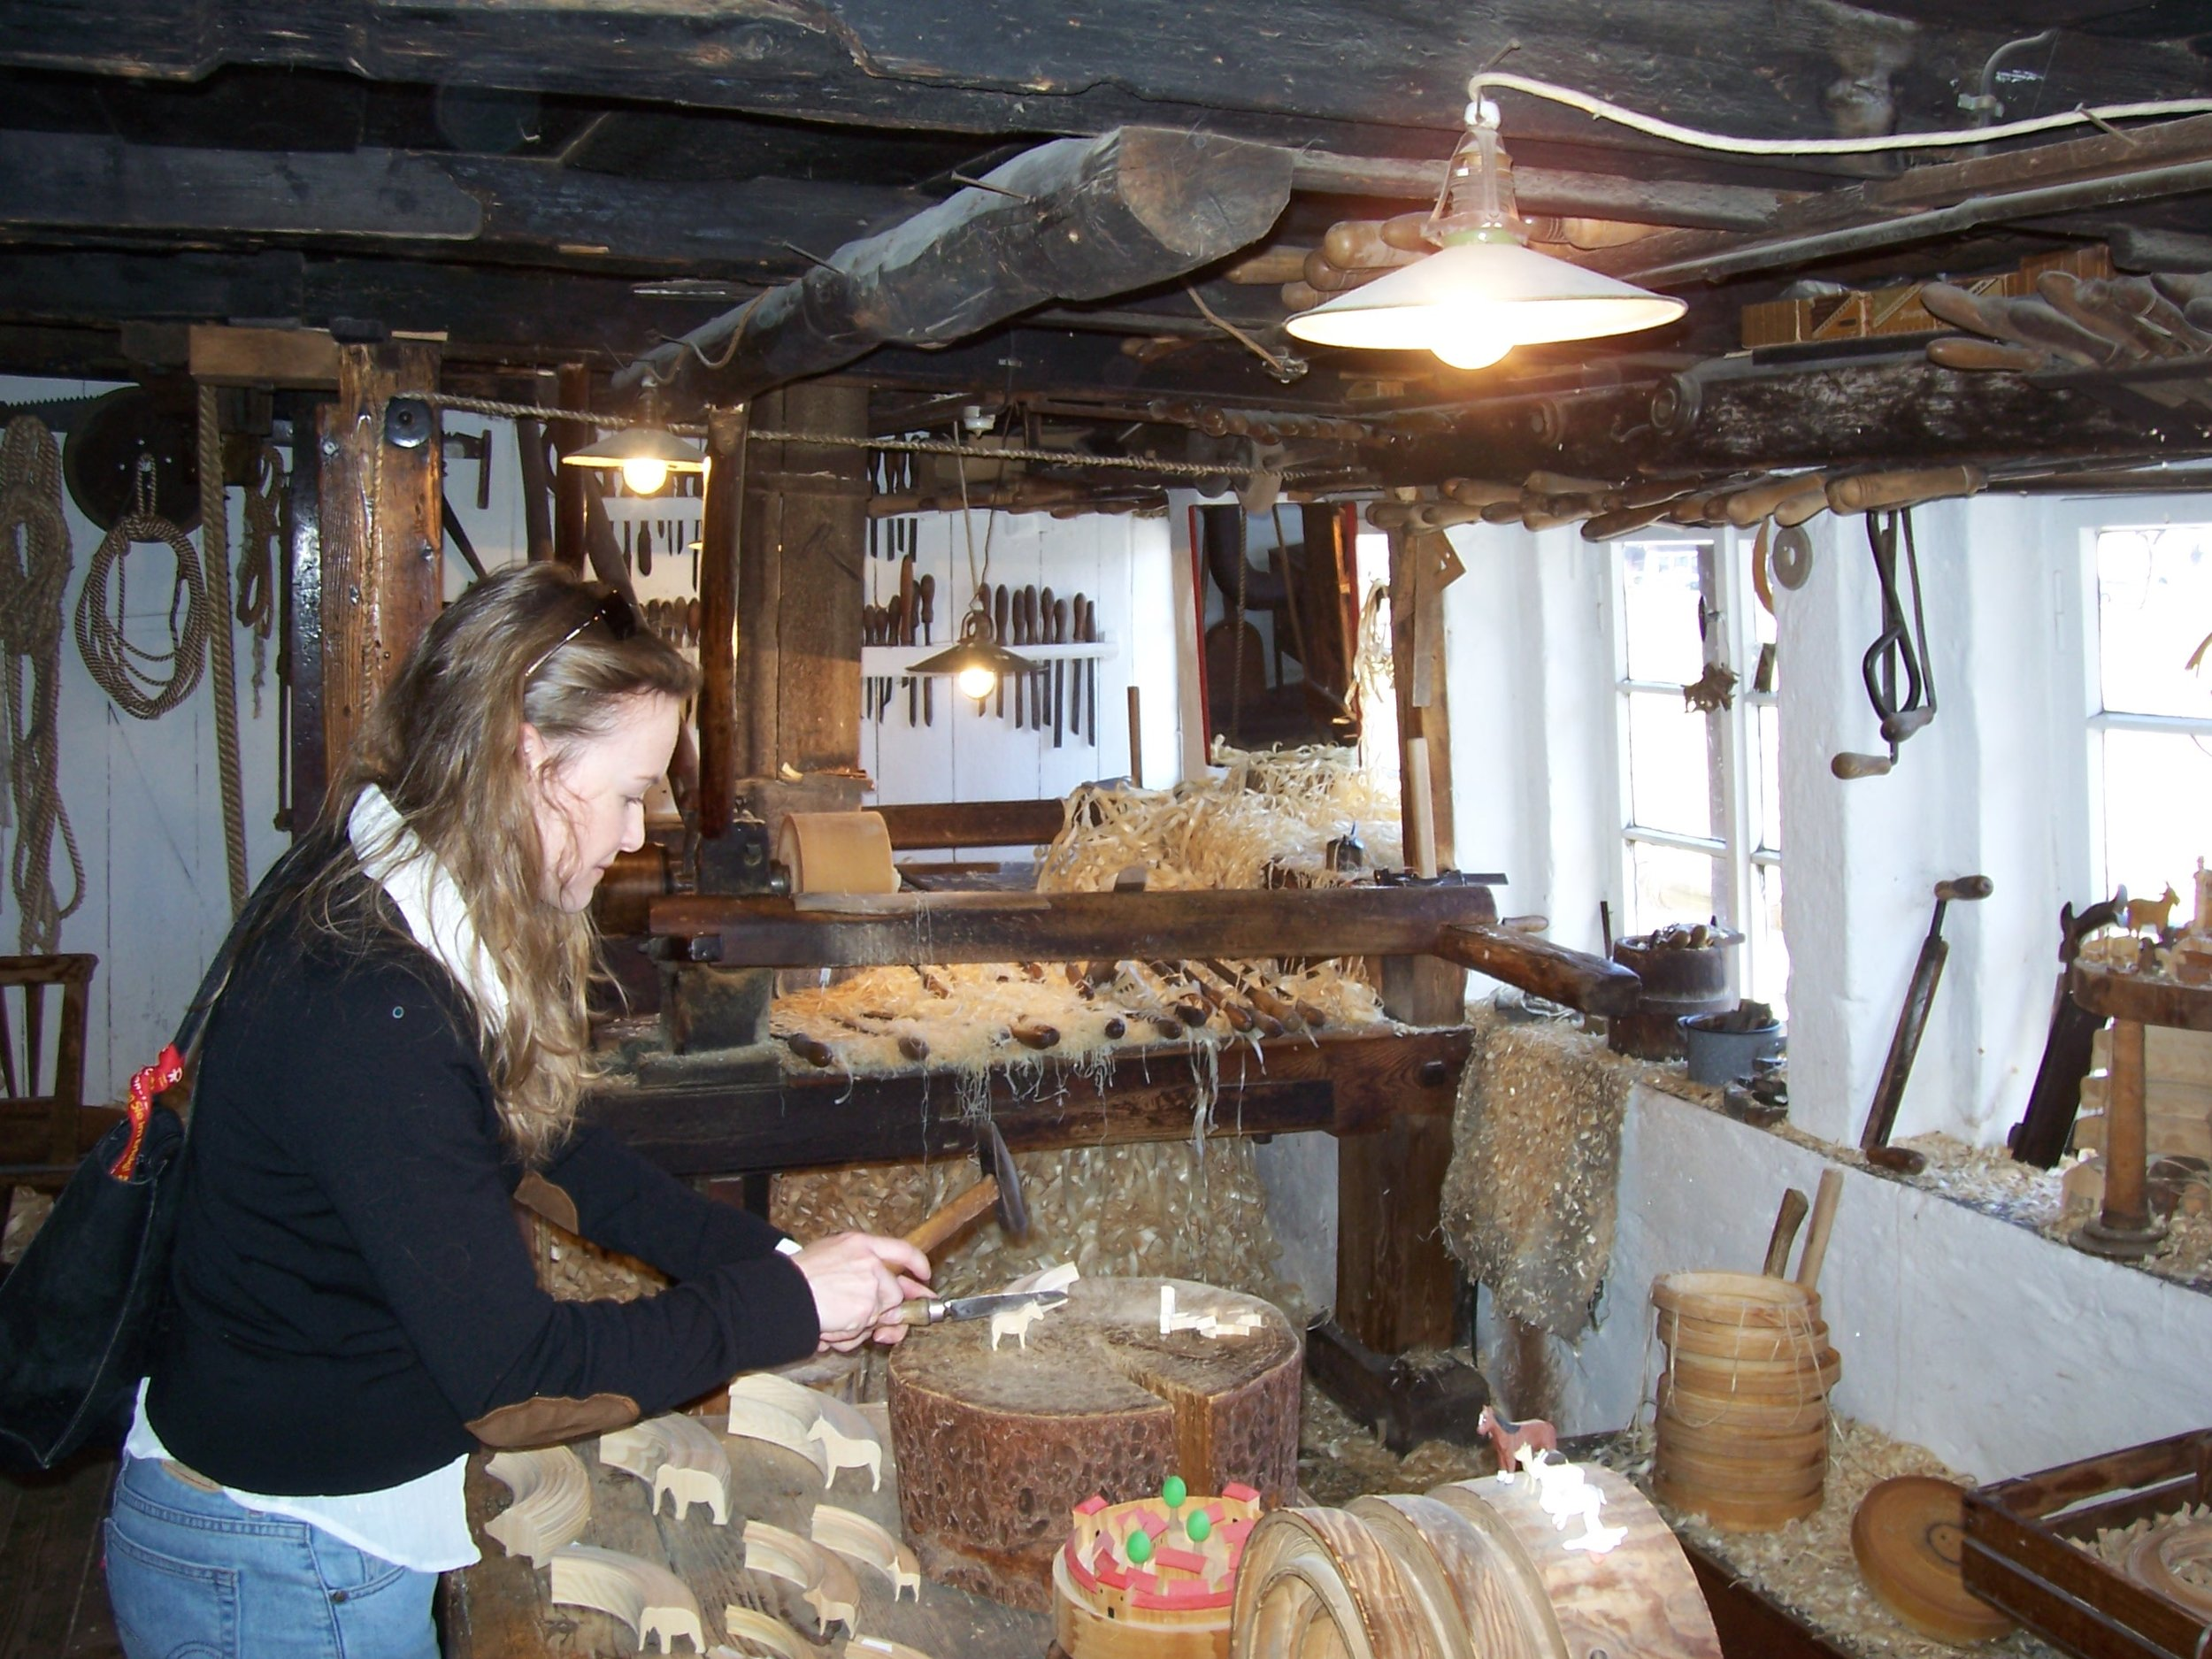 Loreen trying her hand at reifening in the Living History Museum in Seiffen